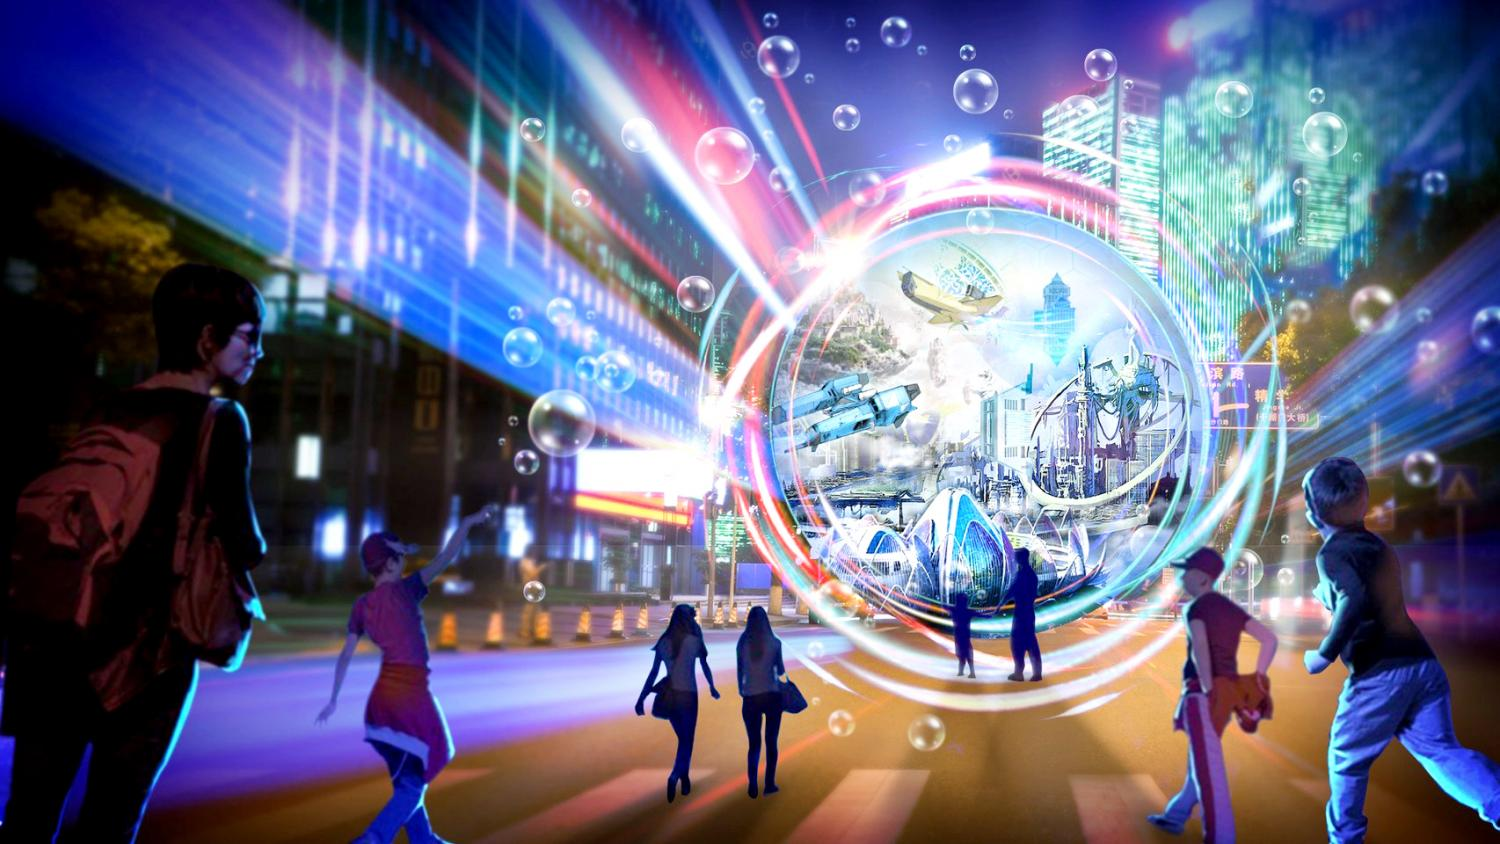 Virtual Events News - T&B Media launches 'Translucia' Metaverse, a Virtual World, partnering with MQDC in property -- a new world first